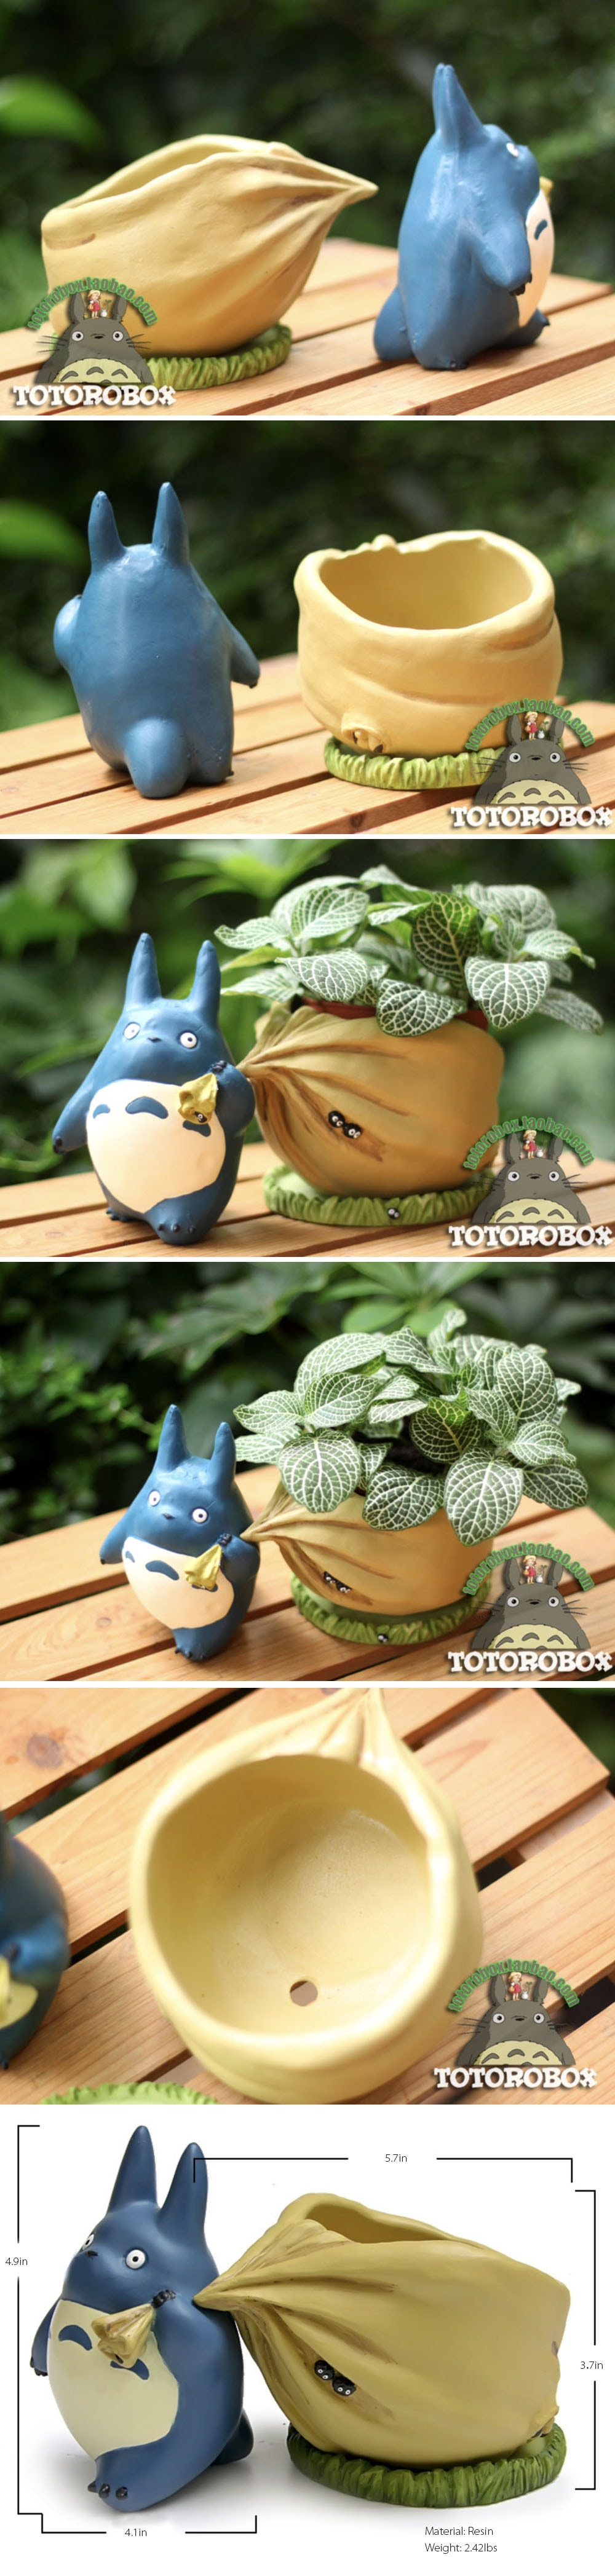 Toroto Decoration Planter Take This Cute Toroto Home